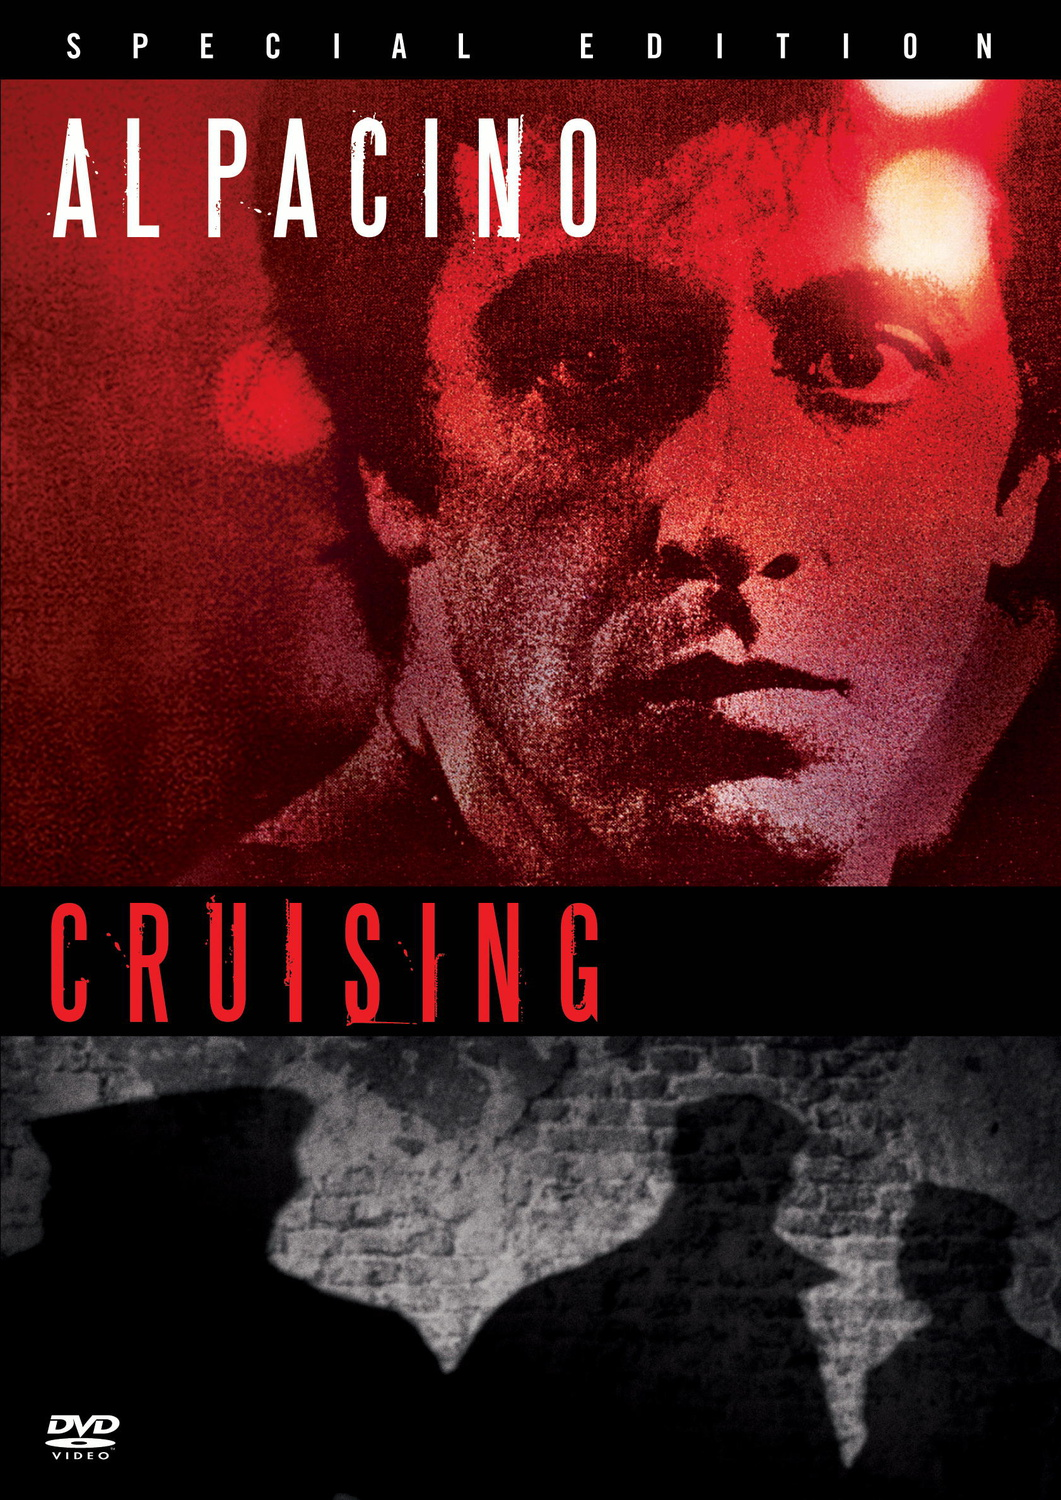 Cruising - Special Edition (1 DVD)